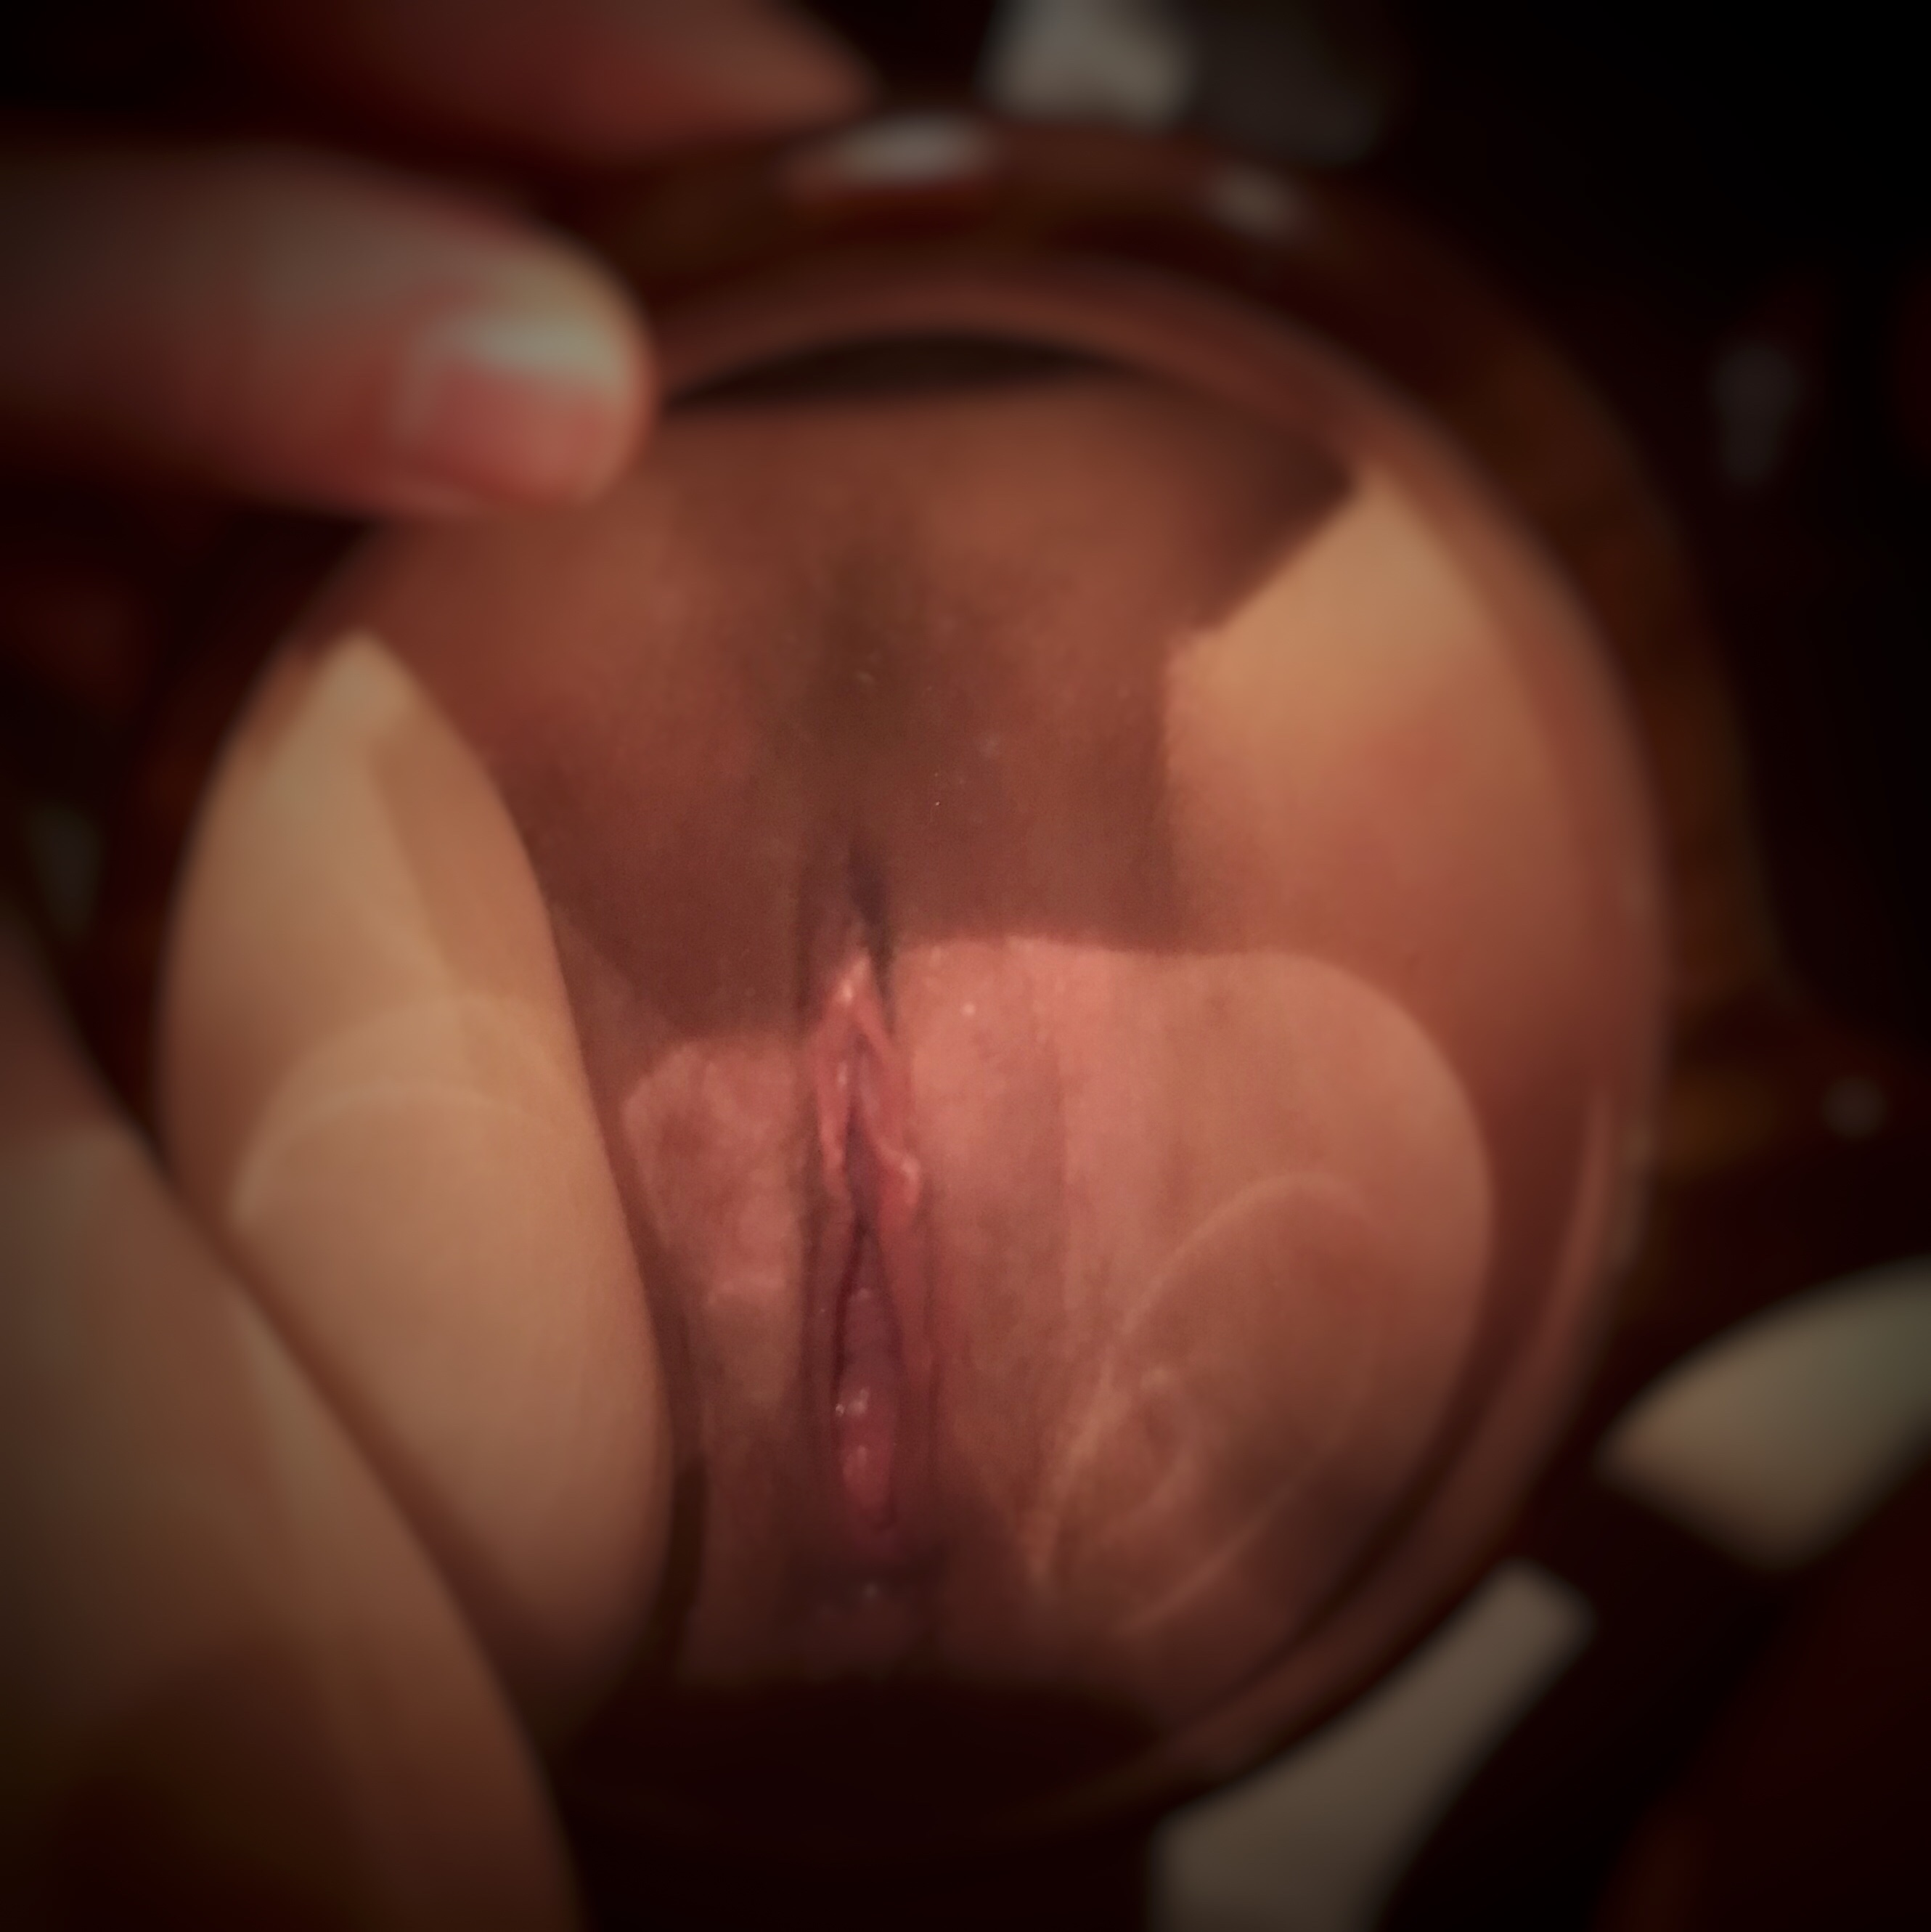 A photo of a mirror held between my thighs, showing a reflection of my vulva